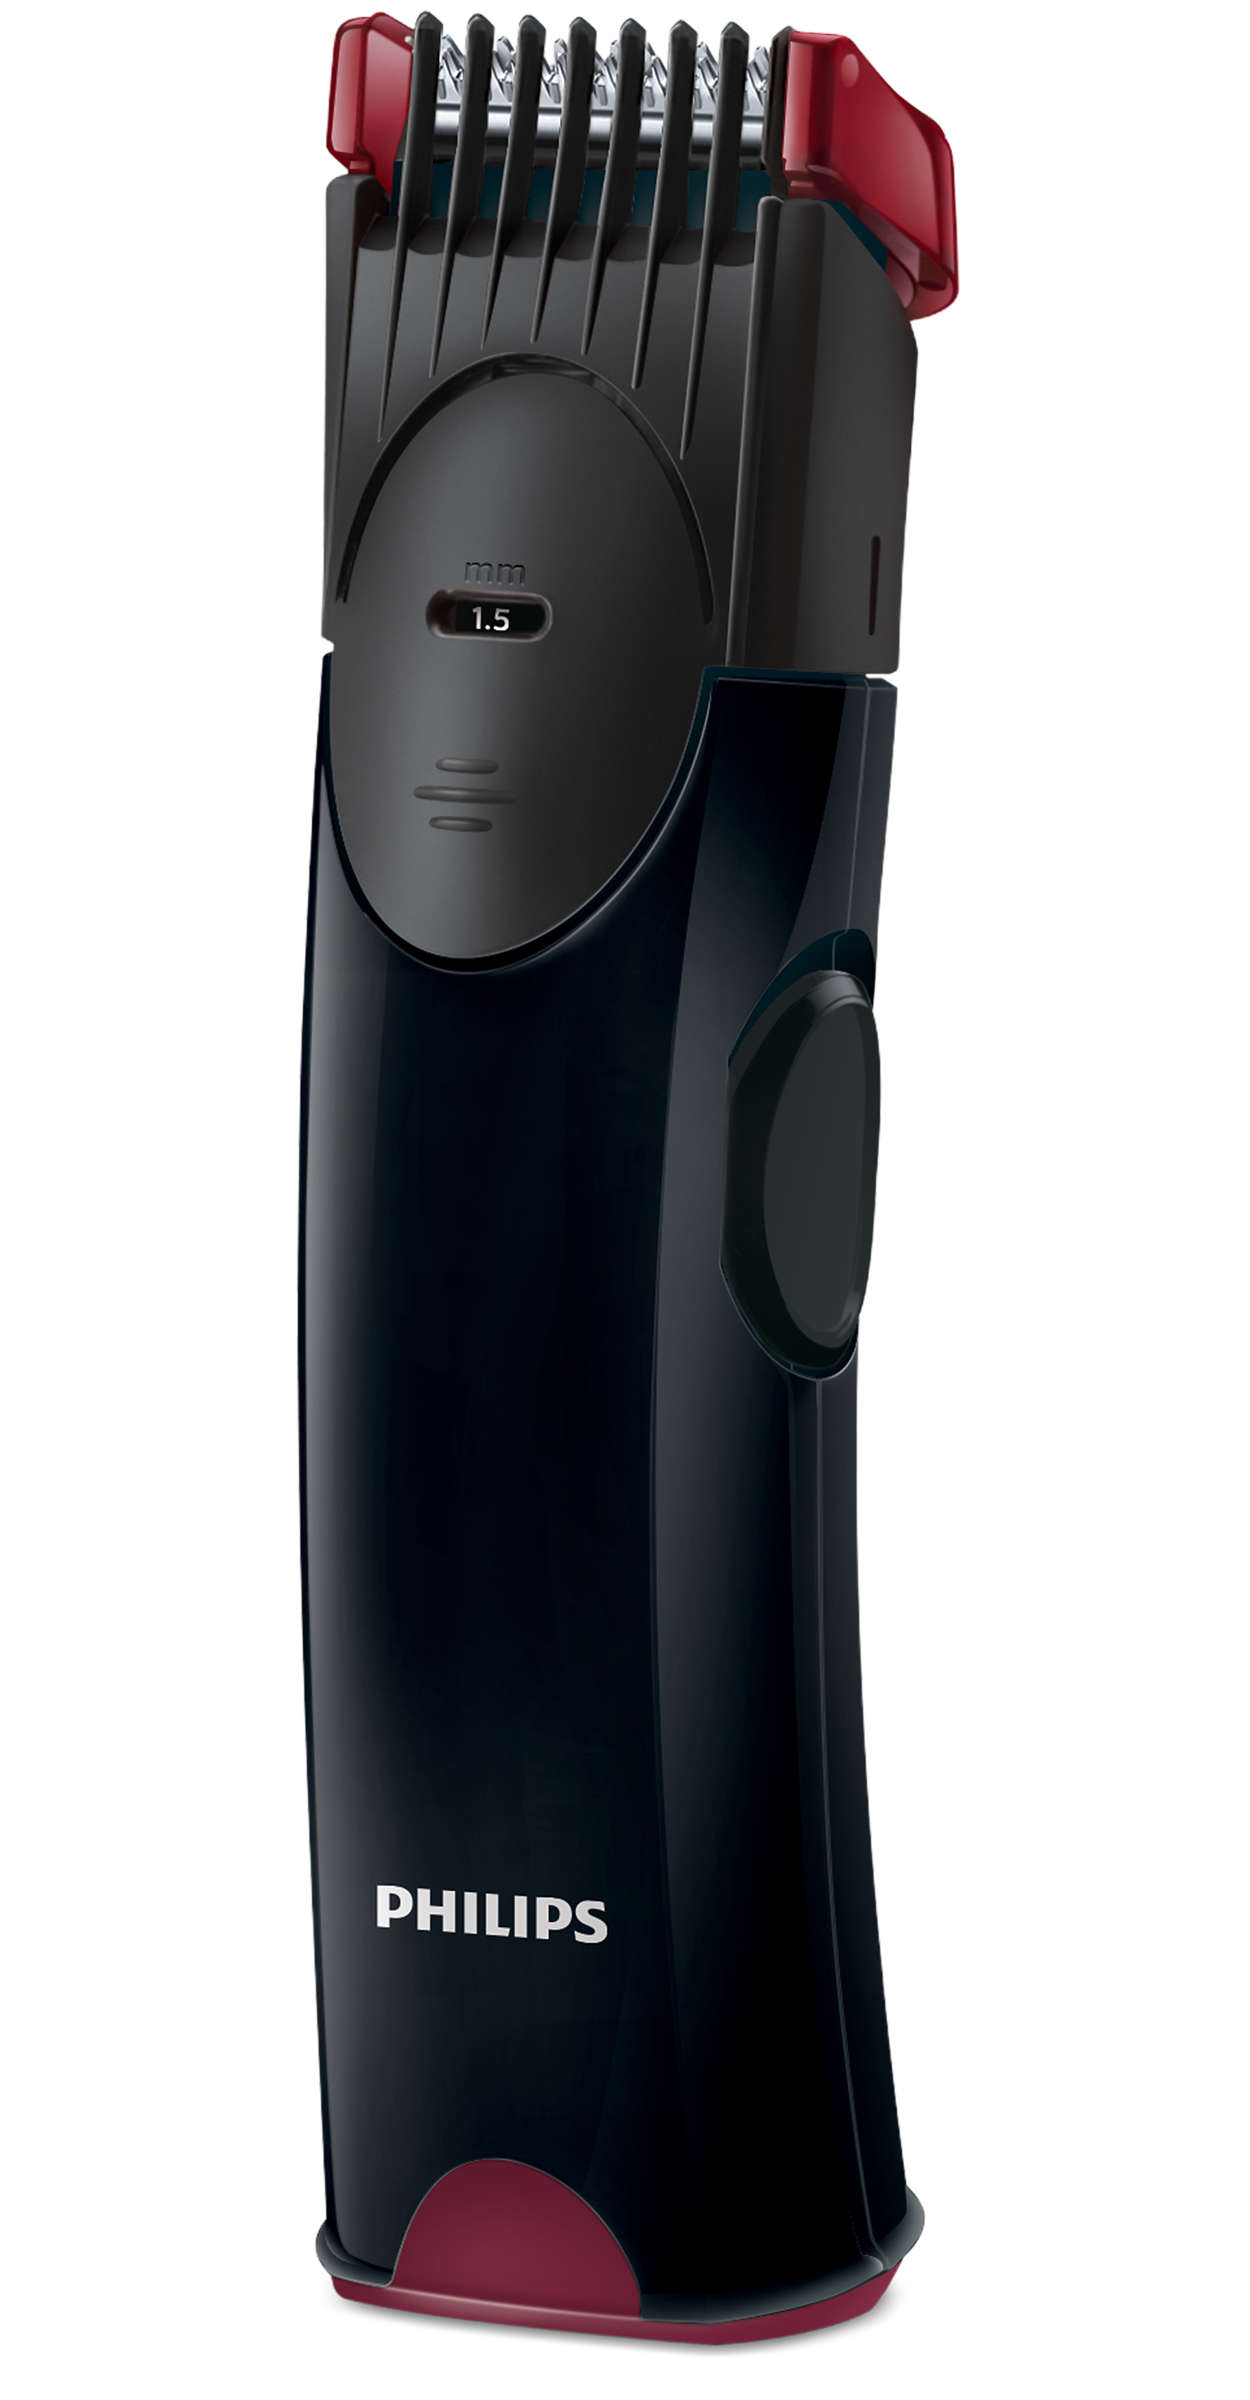 beardtrimmer series 1000 beard trimmer bt1005 10 philips. Black Bedroom Furniture Sets. Home Design Ideas